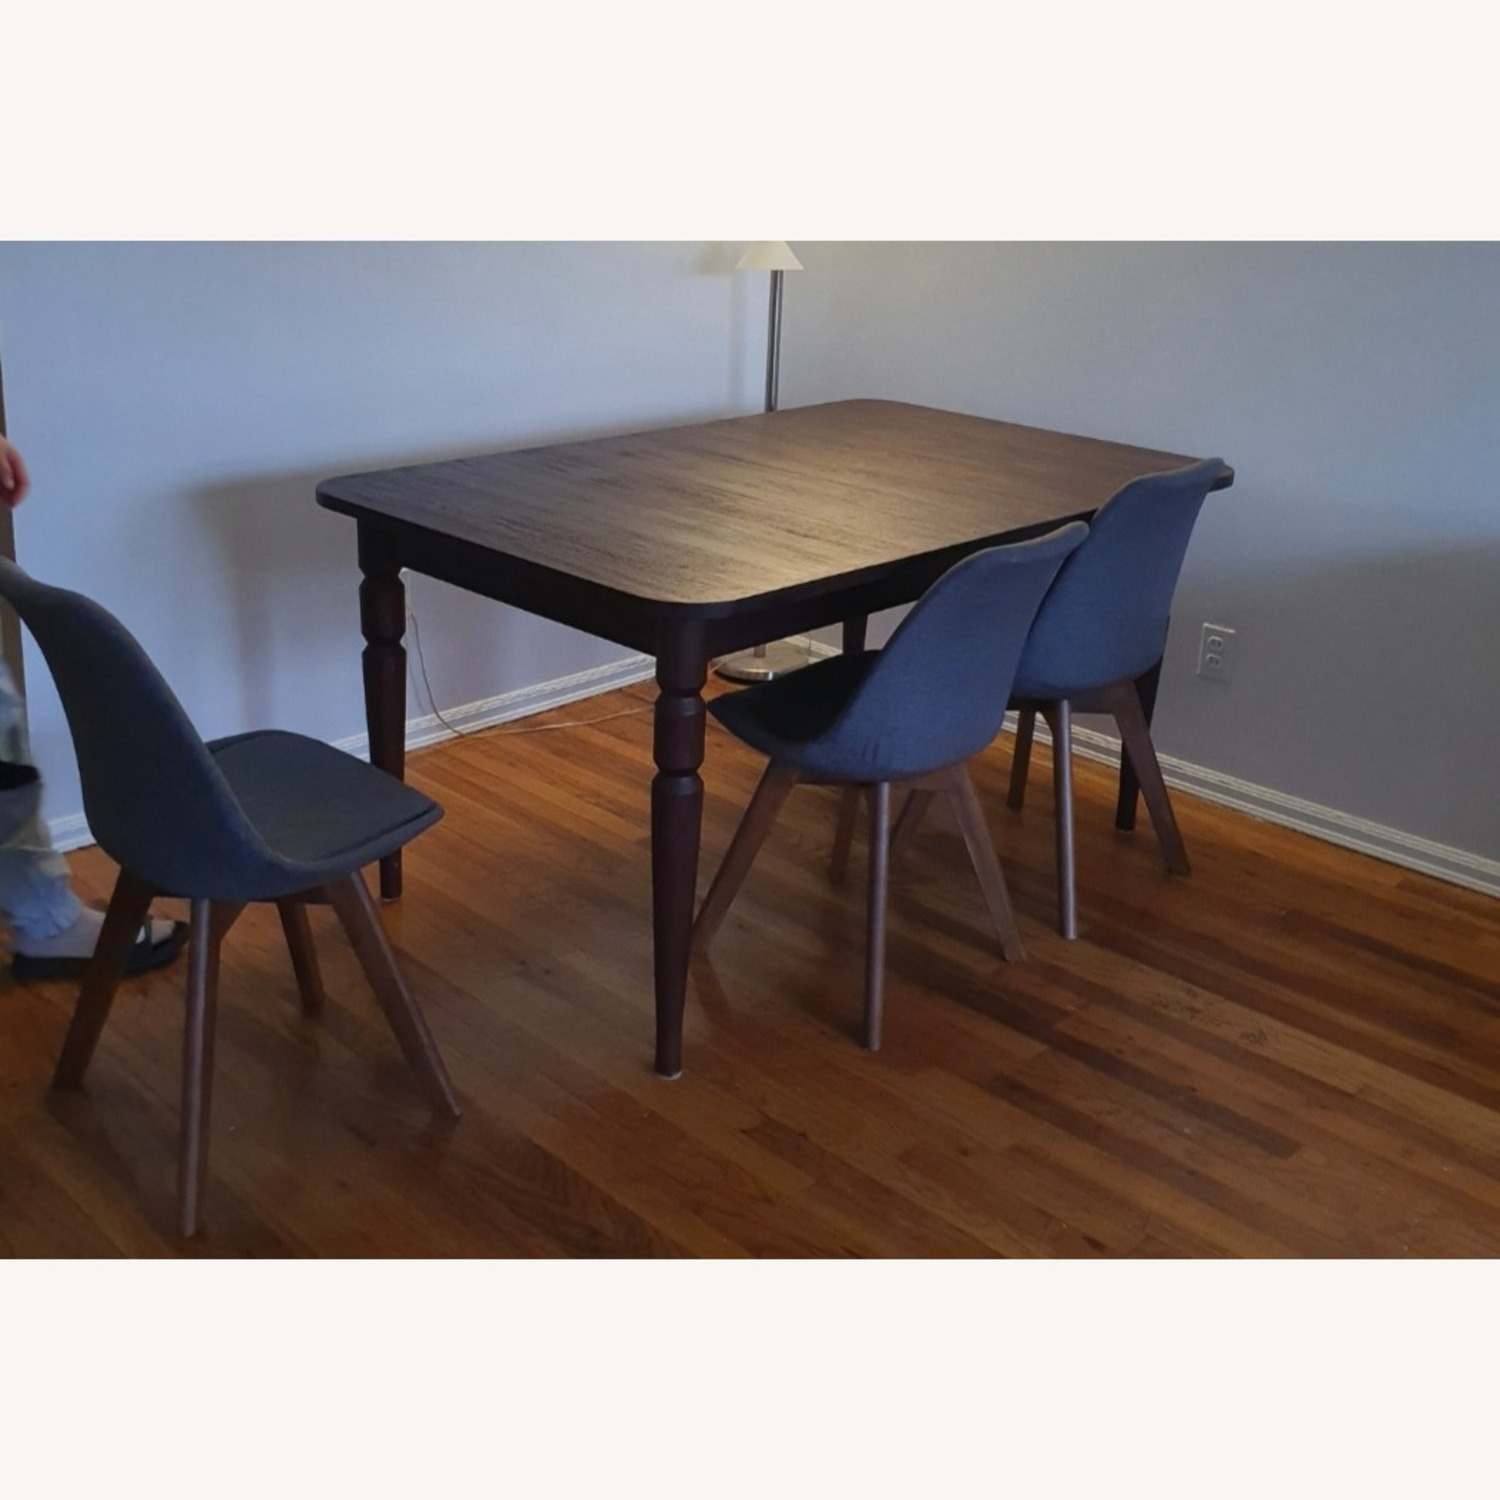 Crate & Barrel Extendable Hard Wood Dining Table - image-3